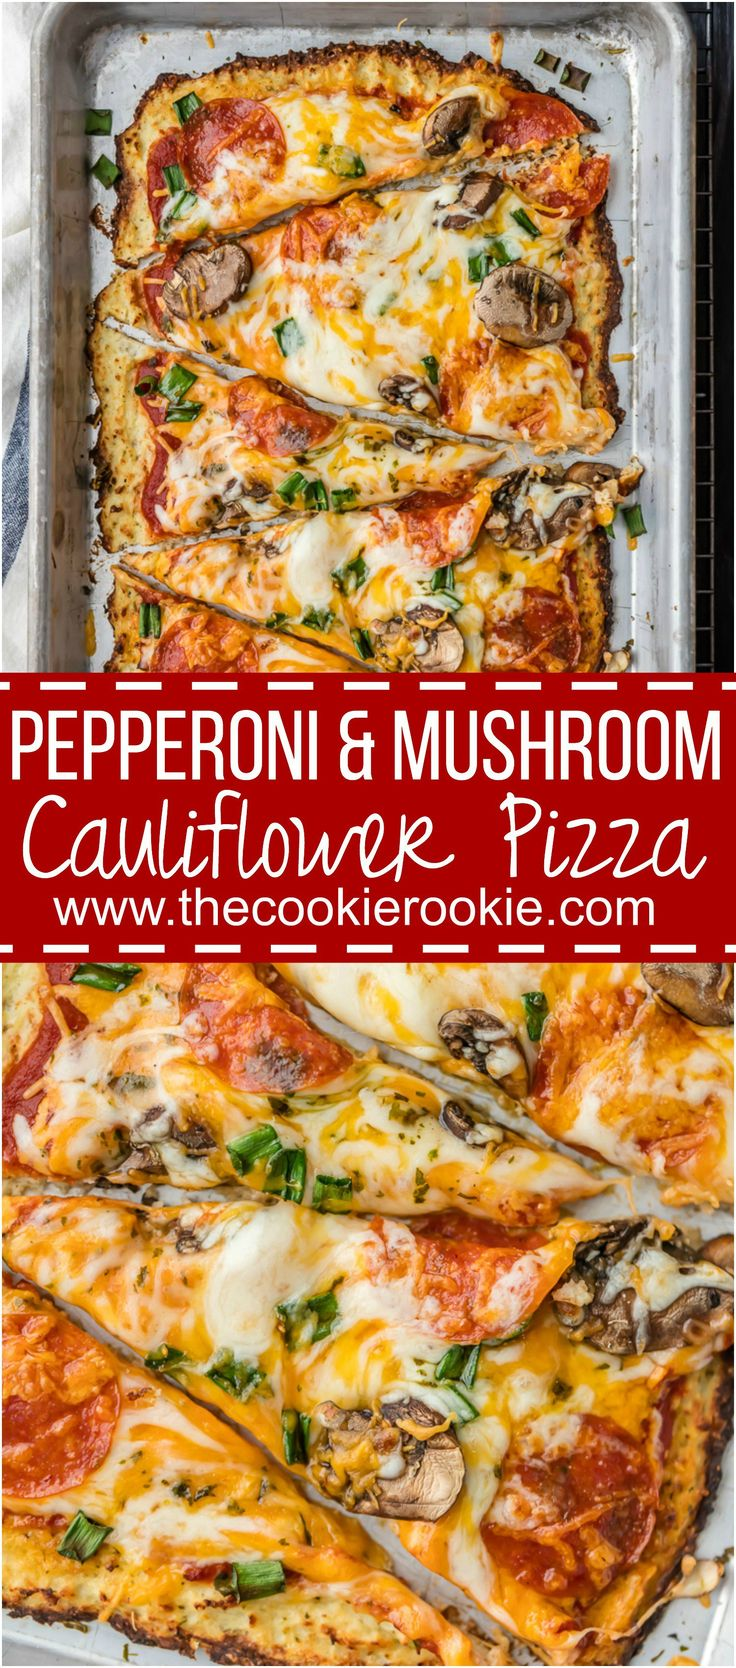 Pepperoni and Mushroom Cauliflower Pizza is LOW CARB and delicious! EASY and healthy recipe still full of flavor! We love cauliflower pizza crust!